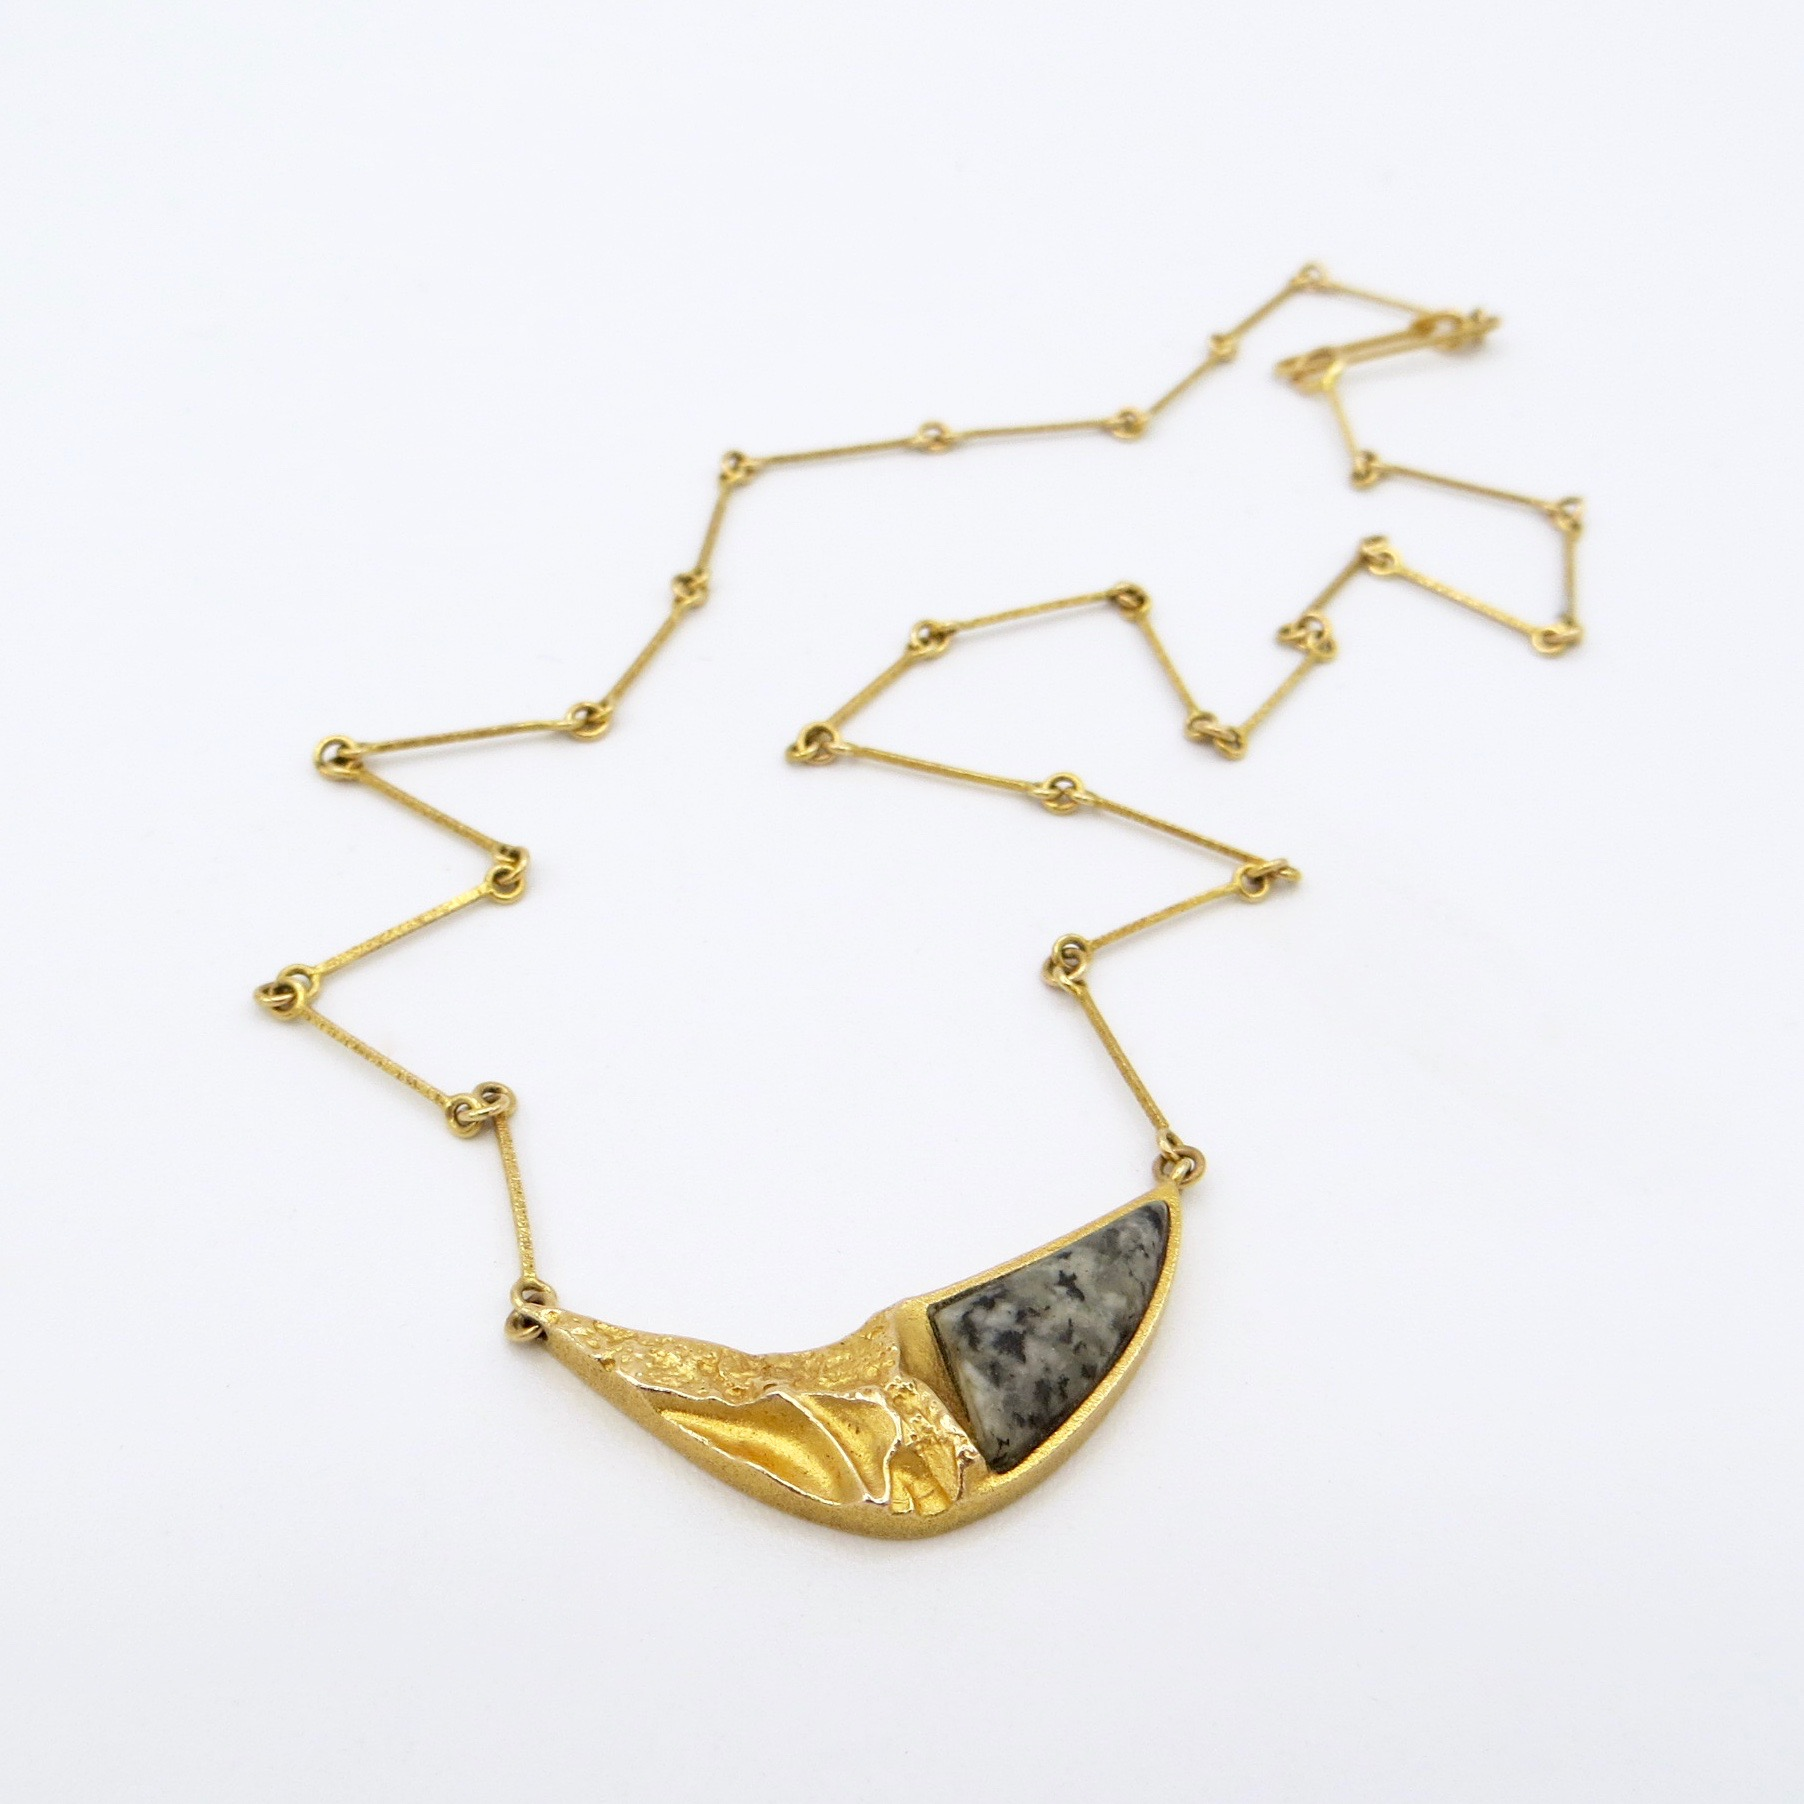 14kt Gold Lapponia Necklace